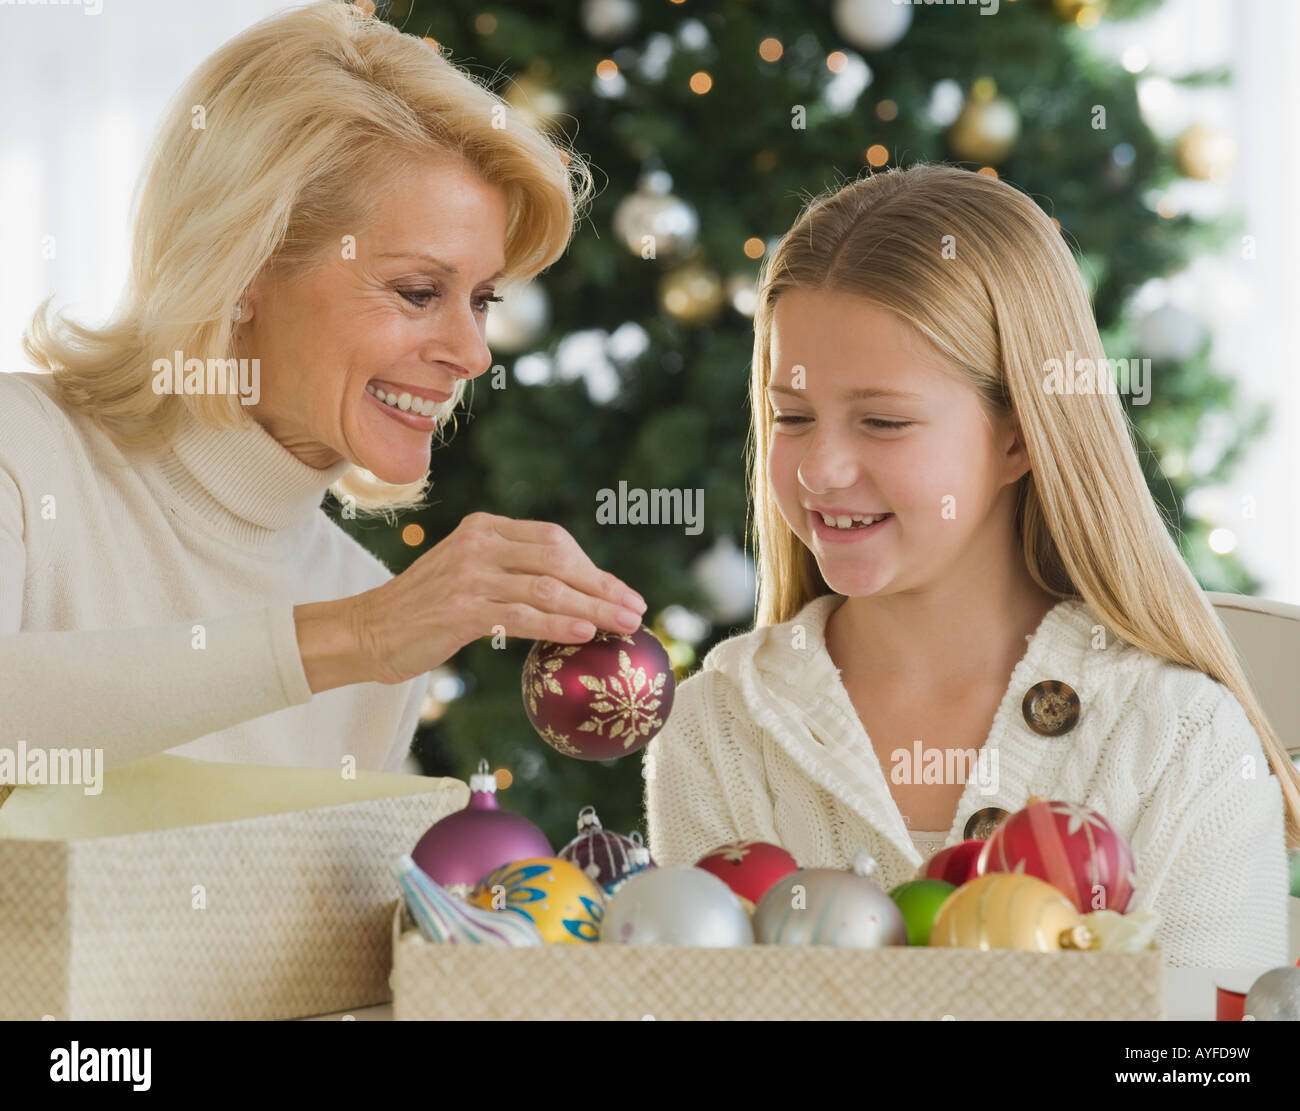 Grandmother and granddaughter looking at Christmas ornaments - Stock Image